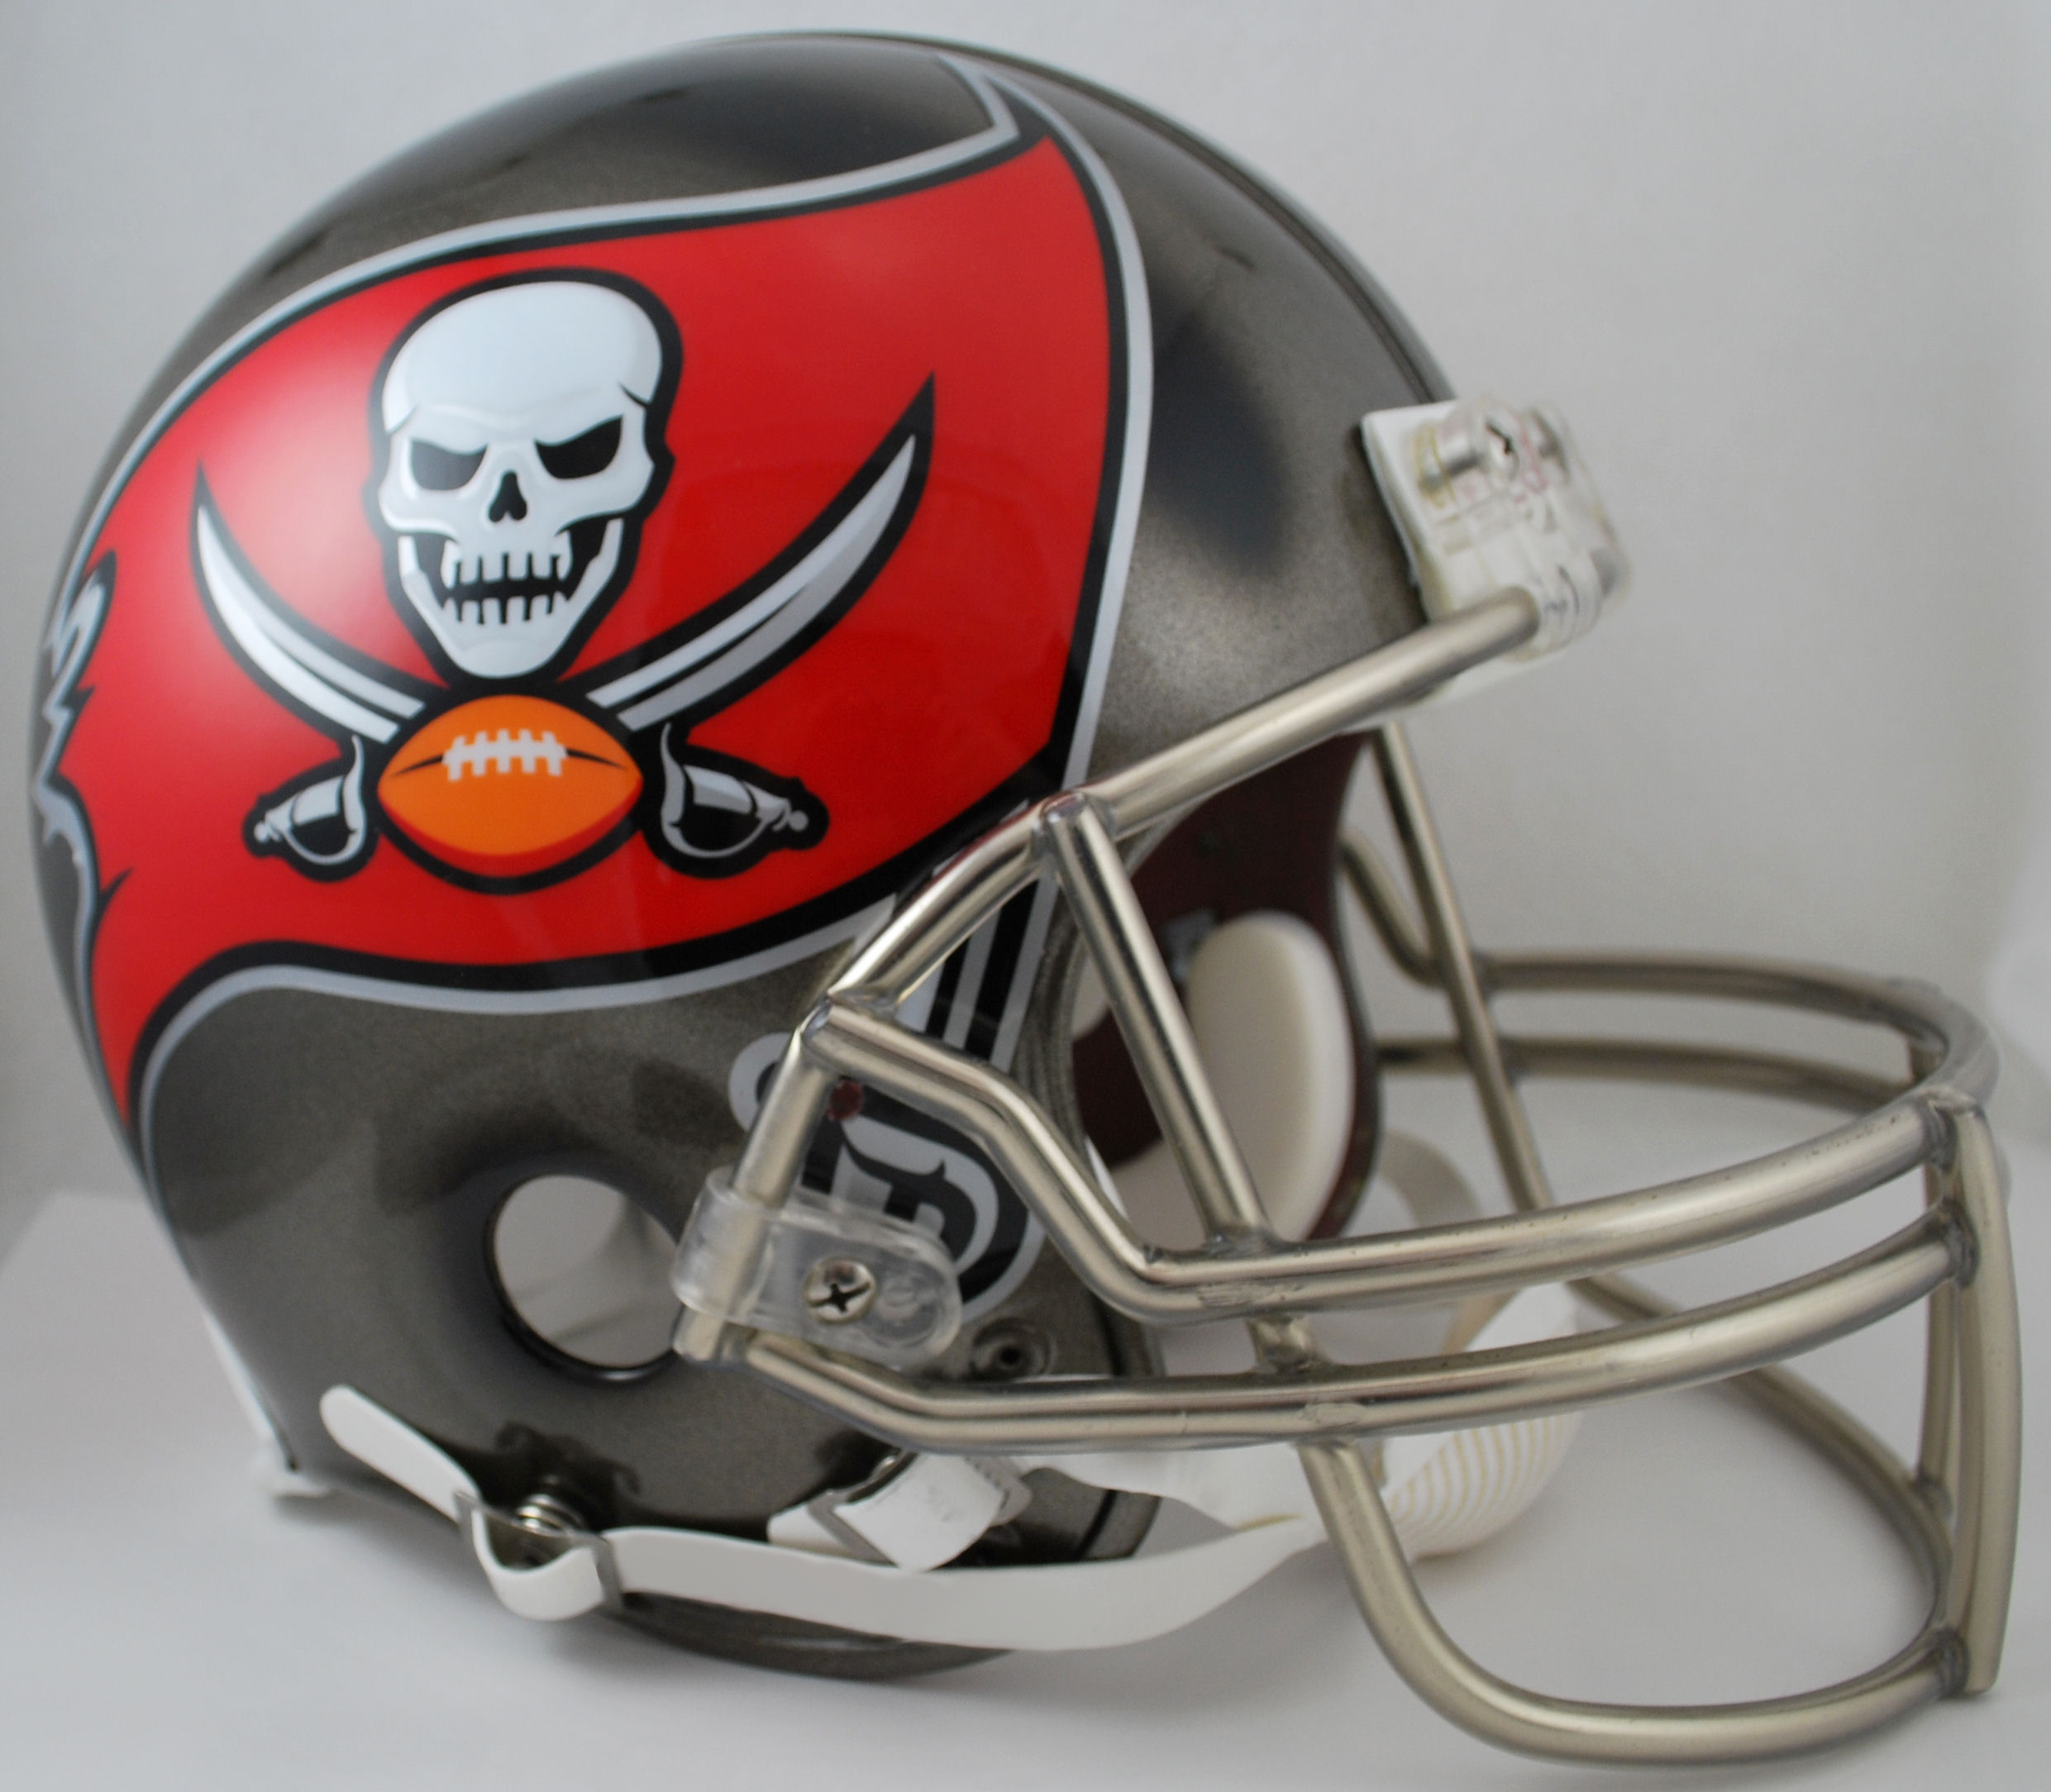 Tampa Bay Buccaneers Football Helmet <B>New 2014</B>